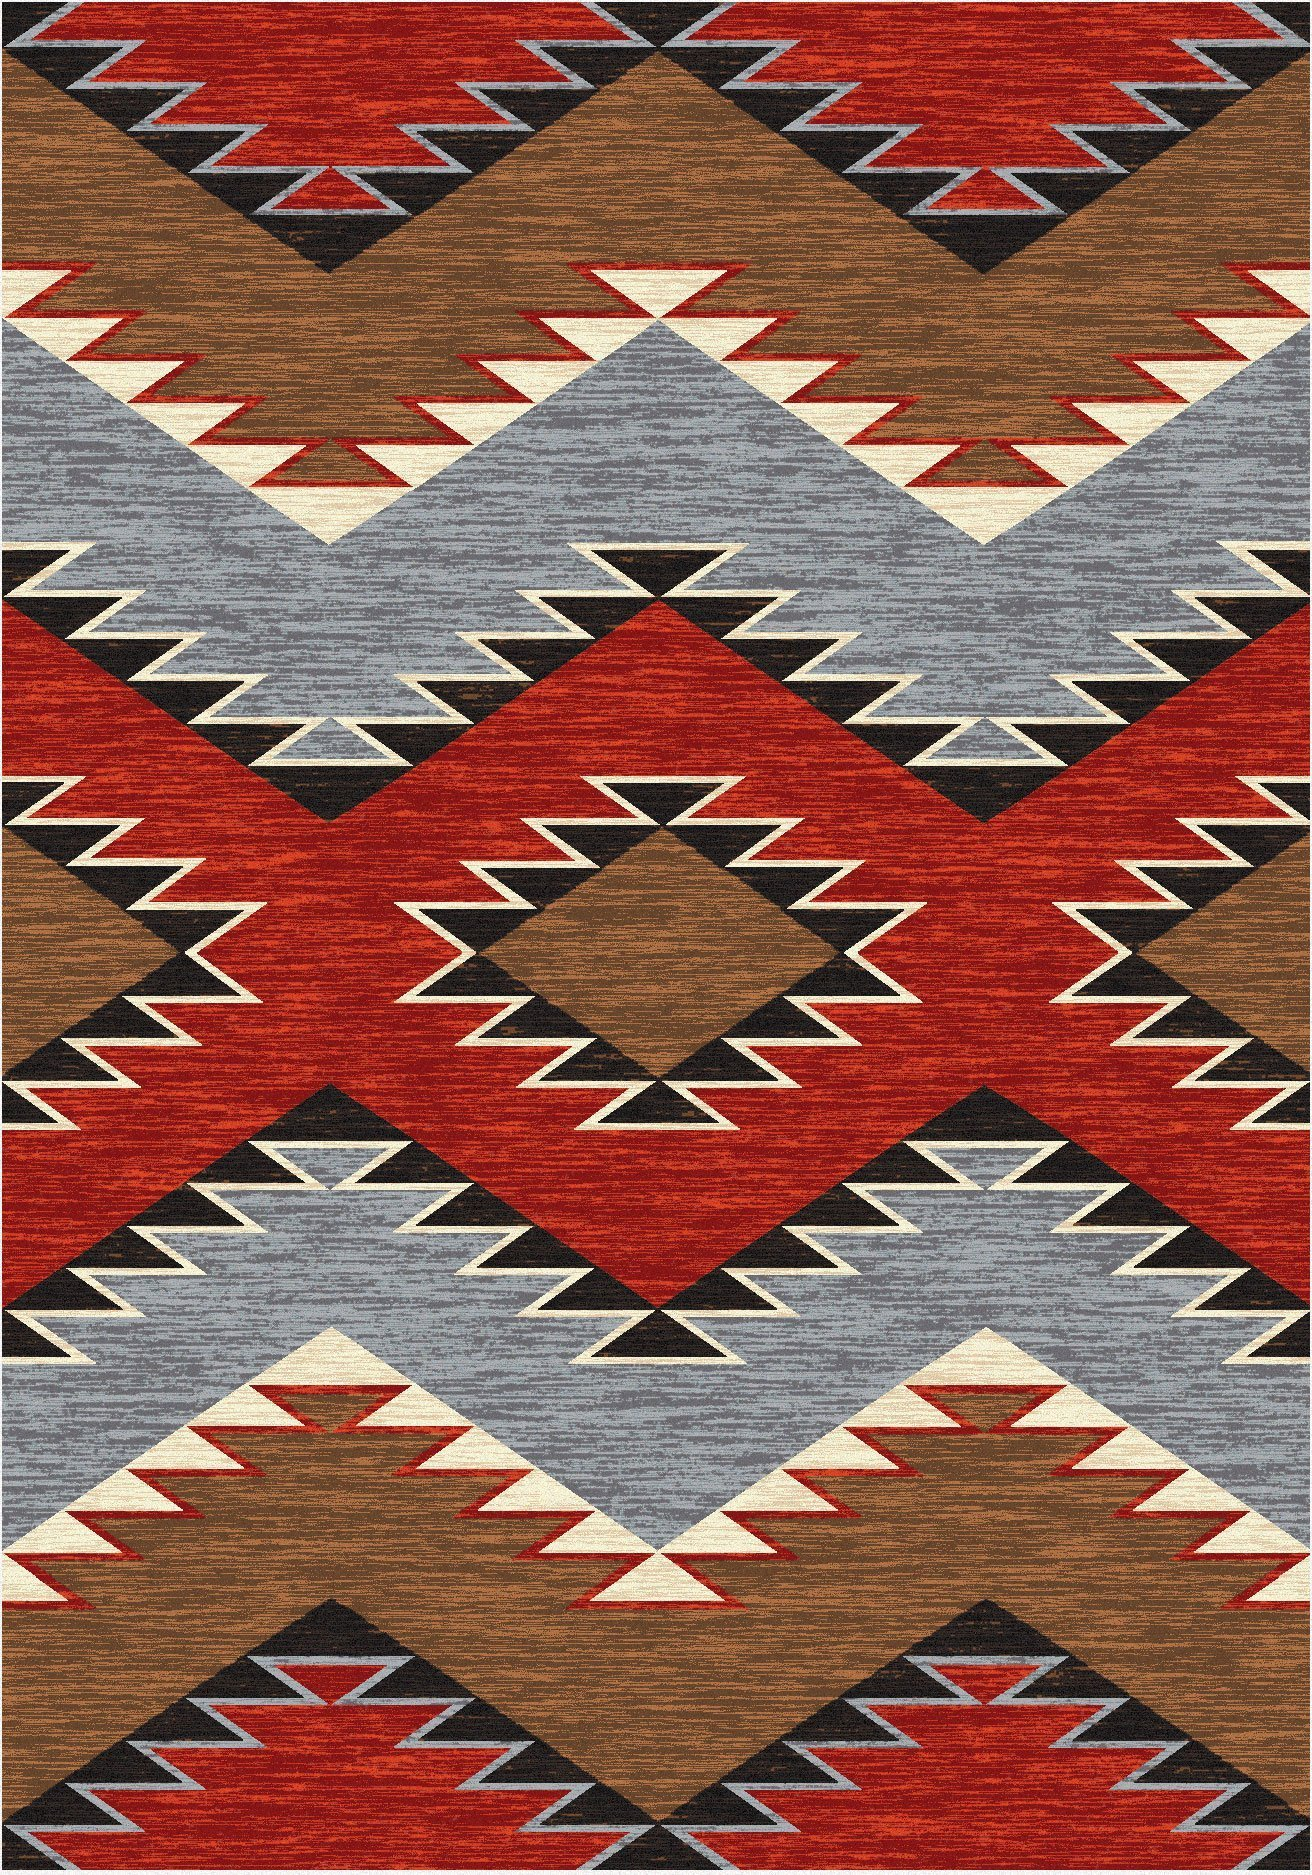 flagstaff rugs style unique bathroom rug furniture southwestern of x